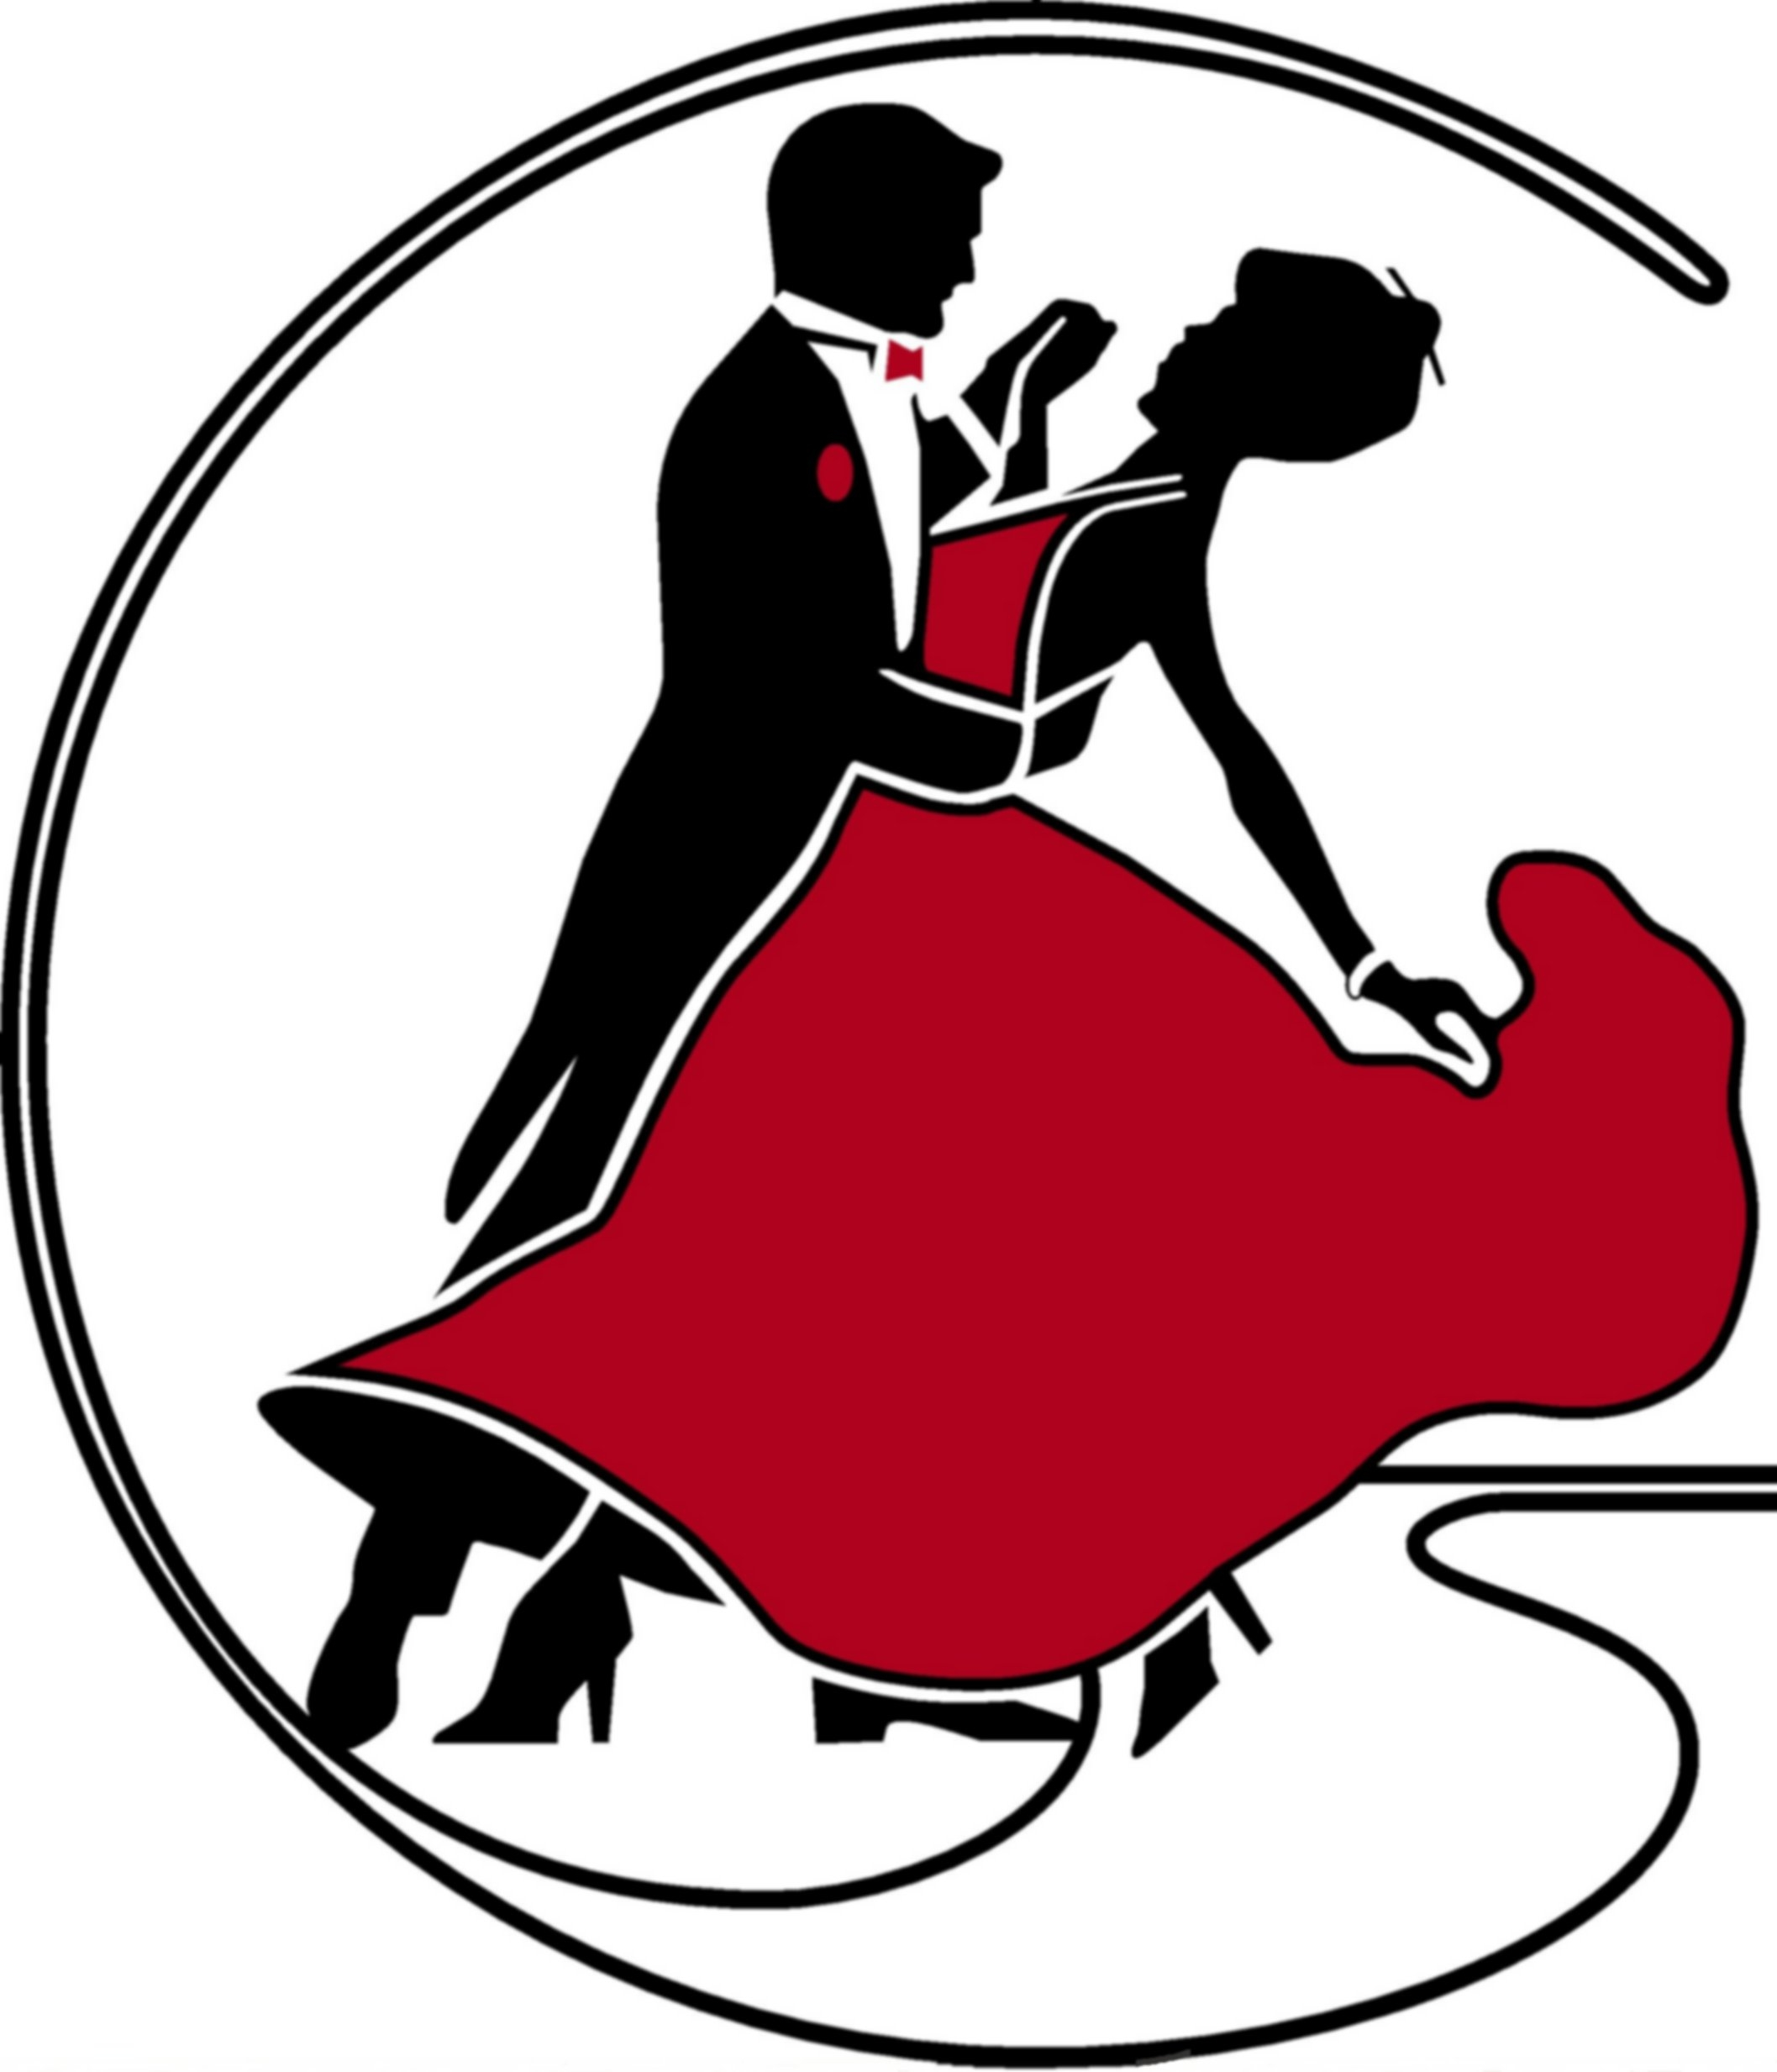 Dancer clipart ballroom dance. Silhouette dancers at getdrawings